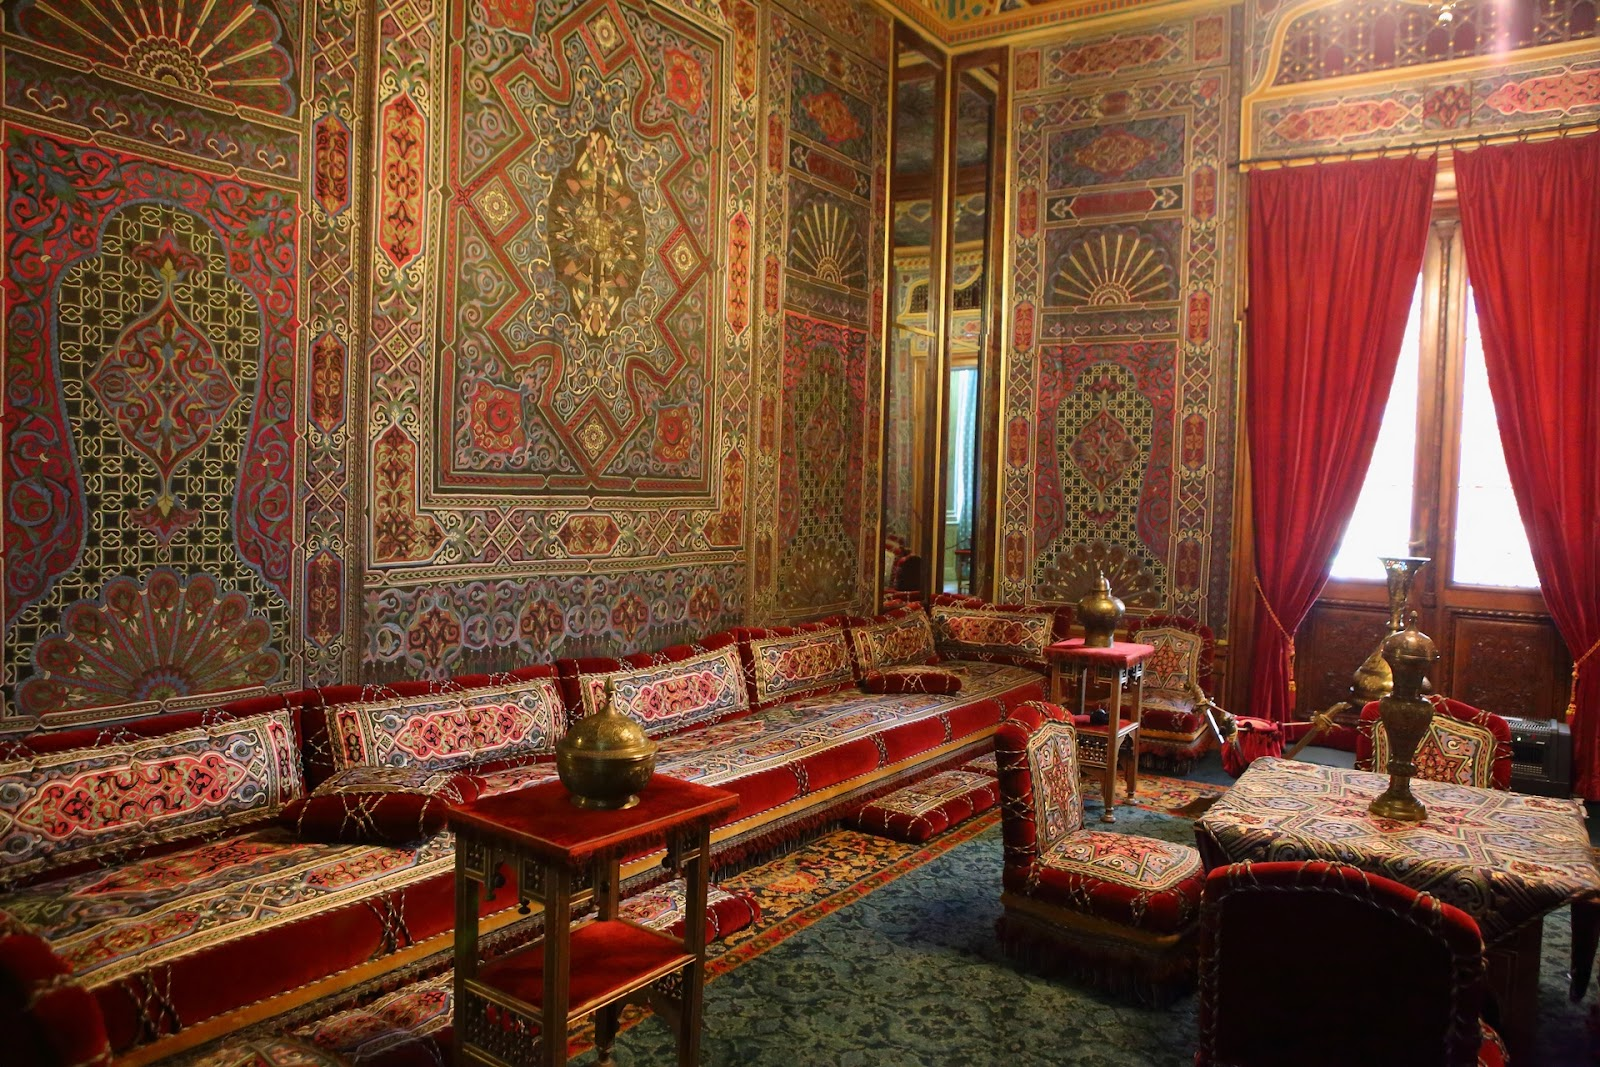 Elegant Castelul Peleș   Interior Room With Turkish Decor.